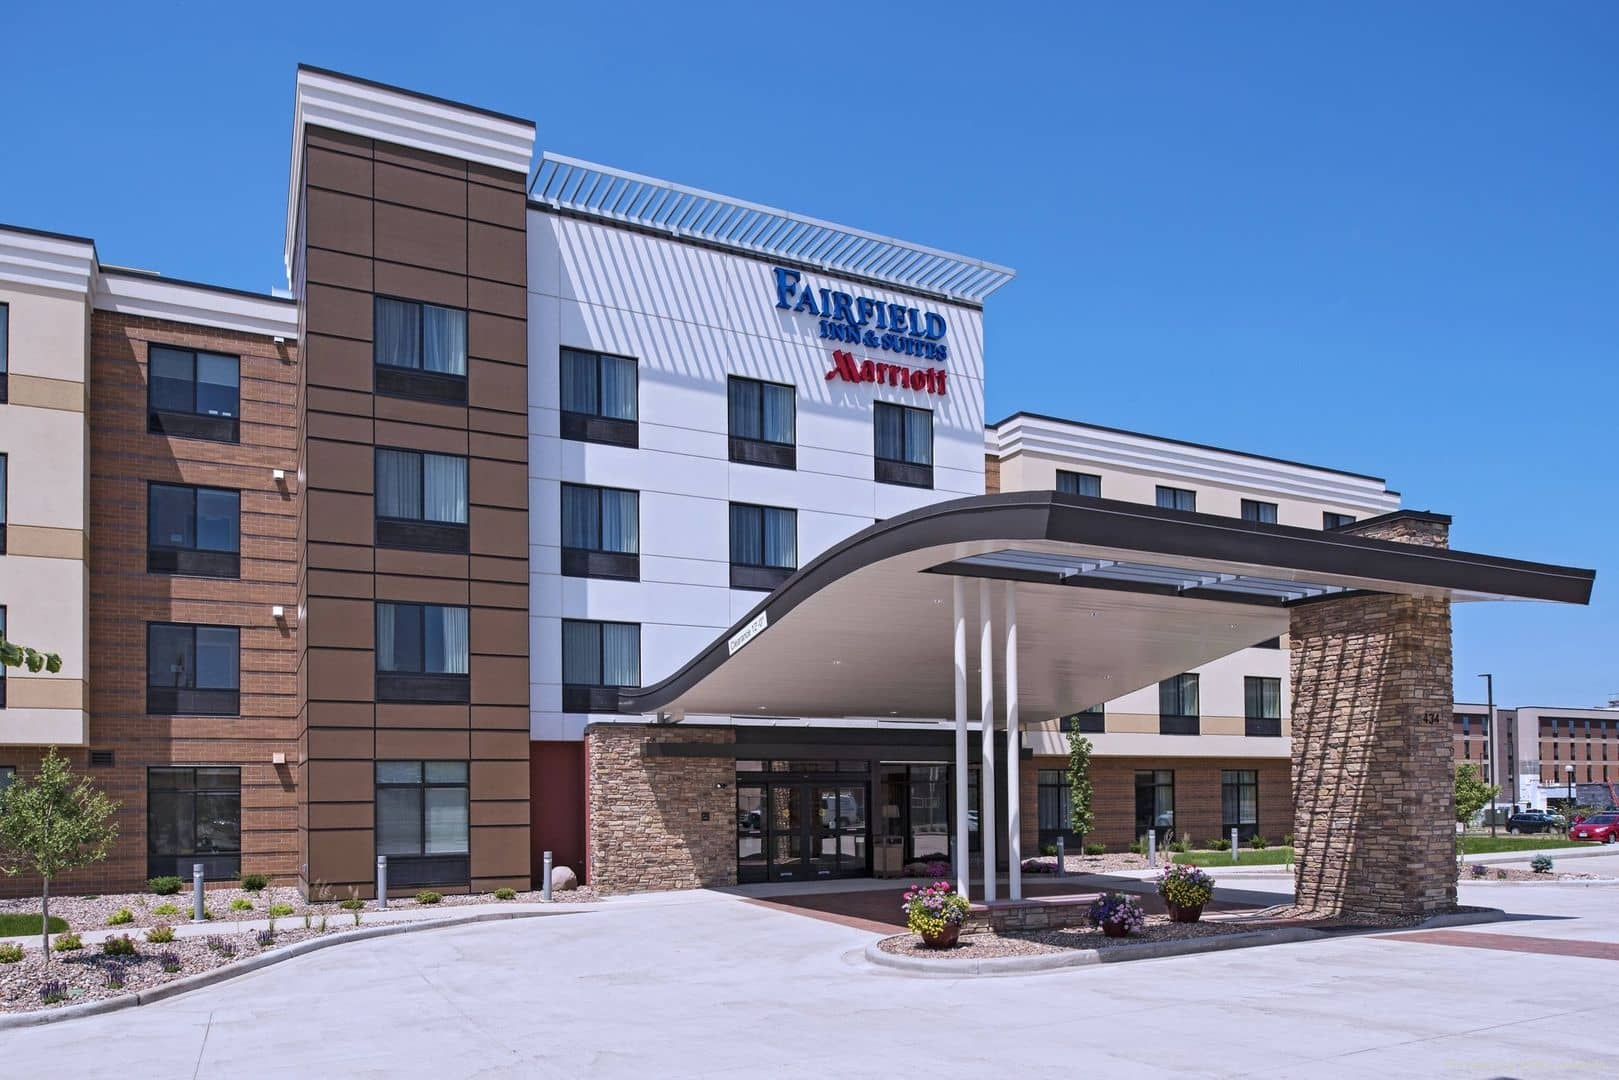 Fairfield Inn image